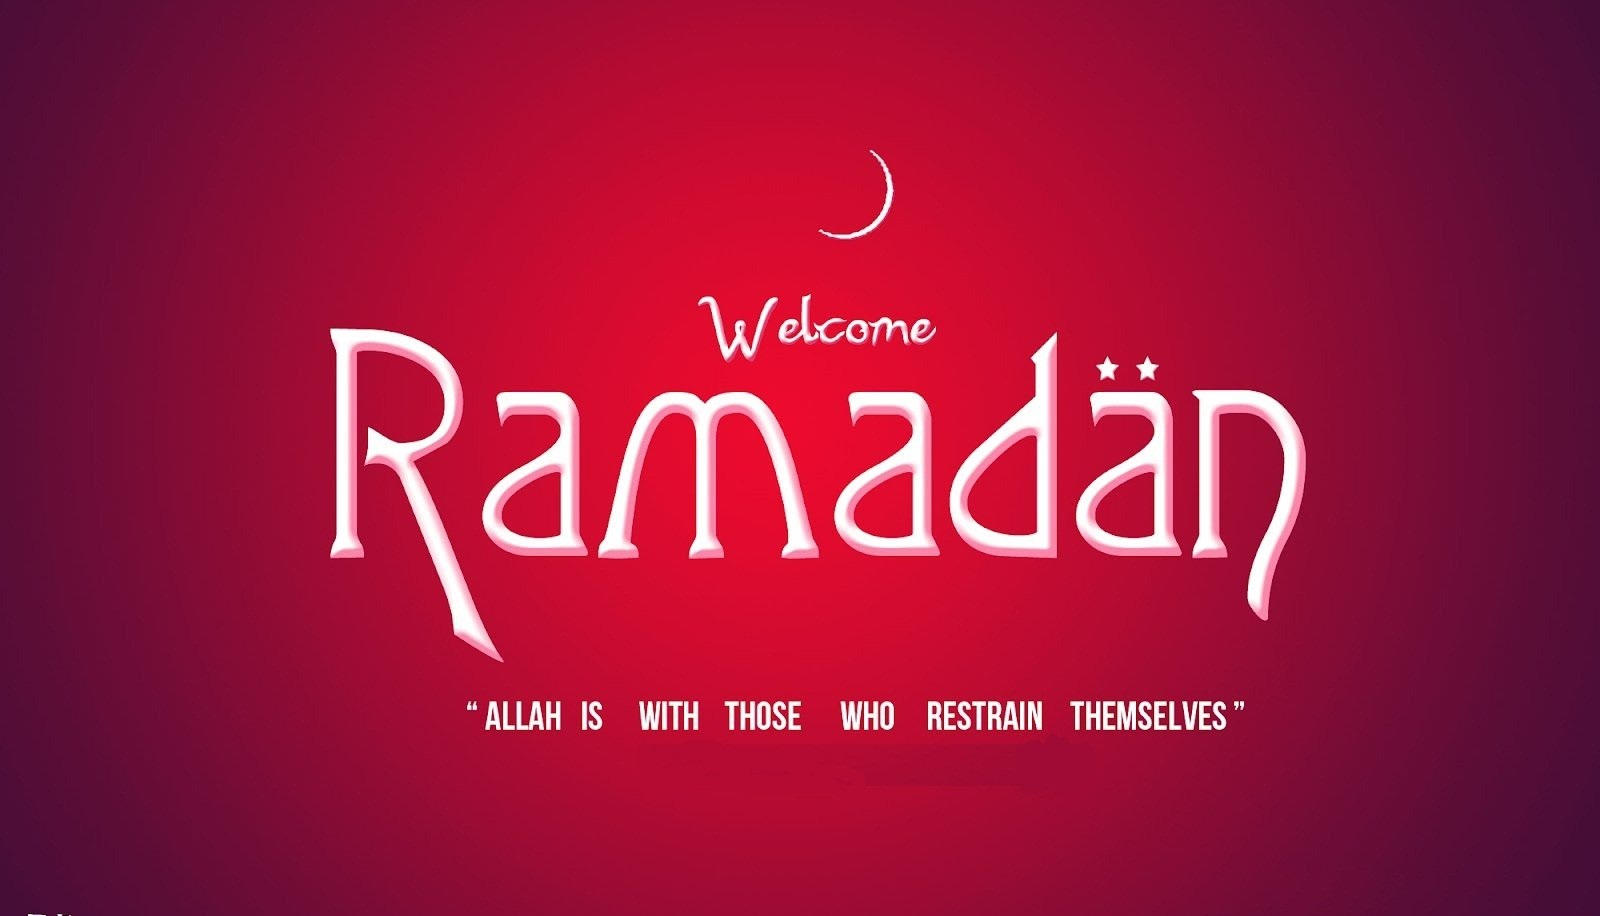 Welcome Ramadan Pictures With Quotes